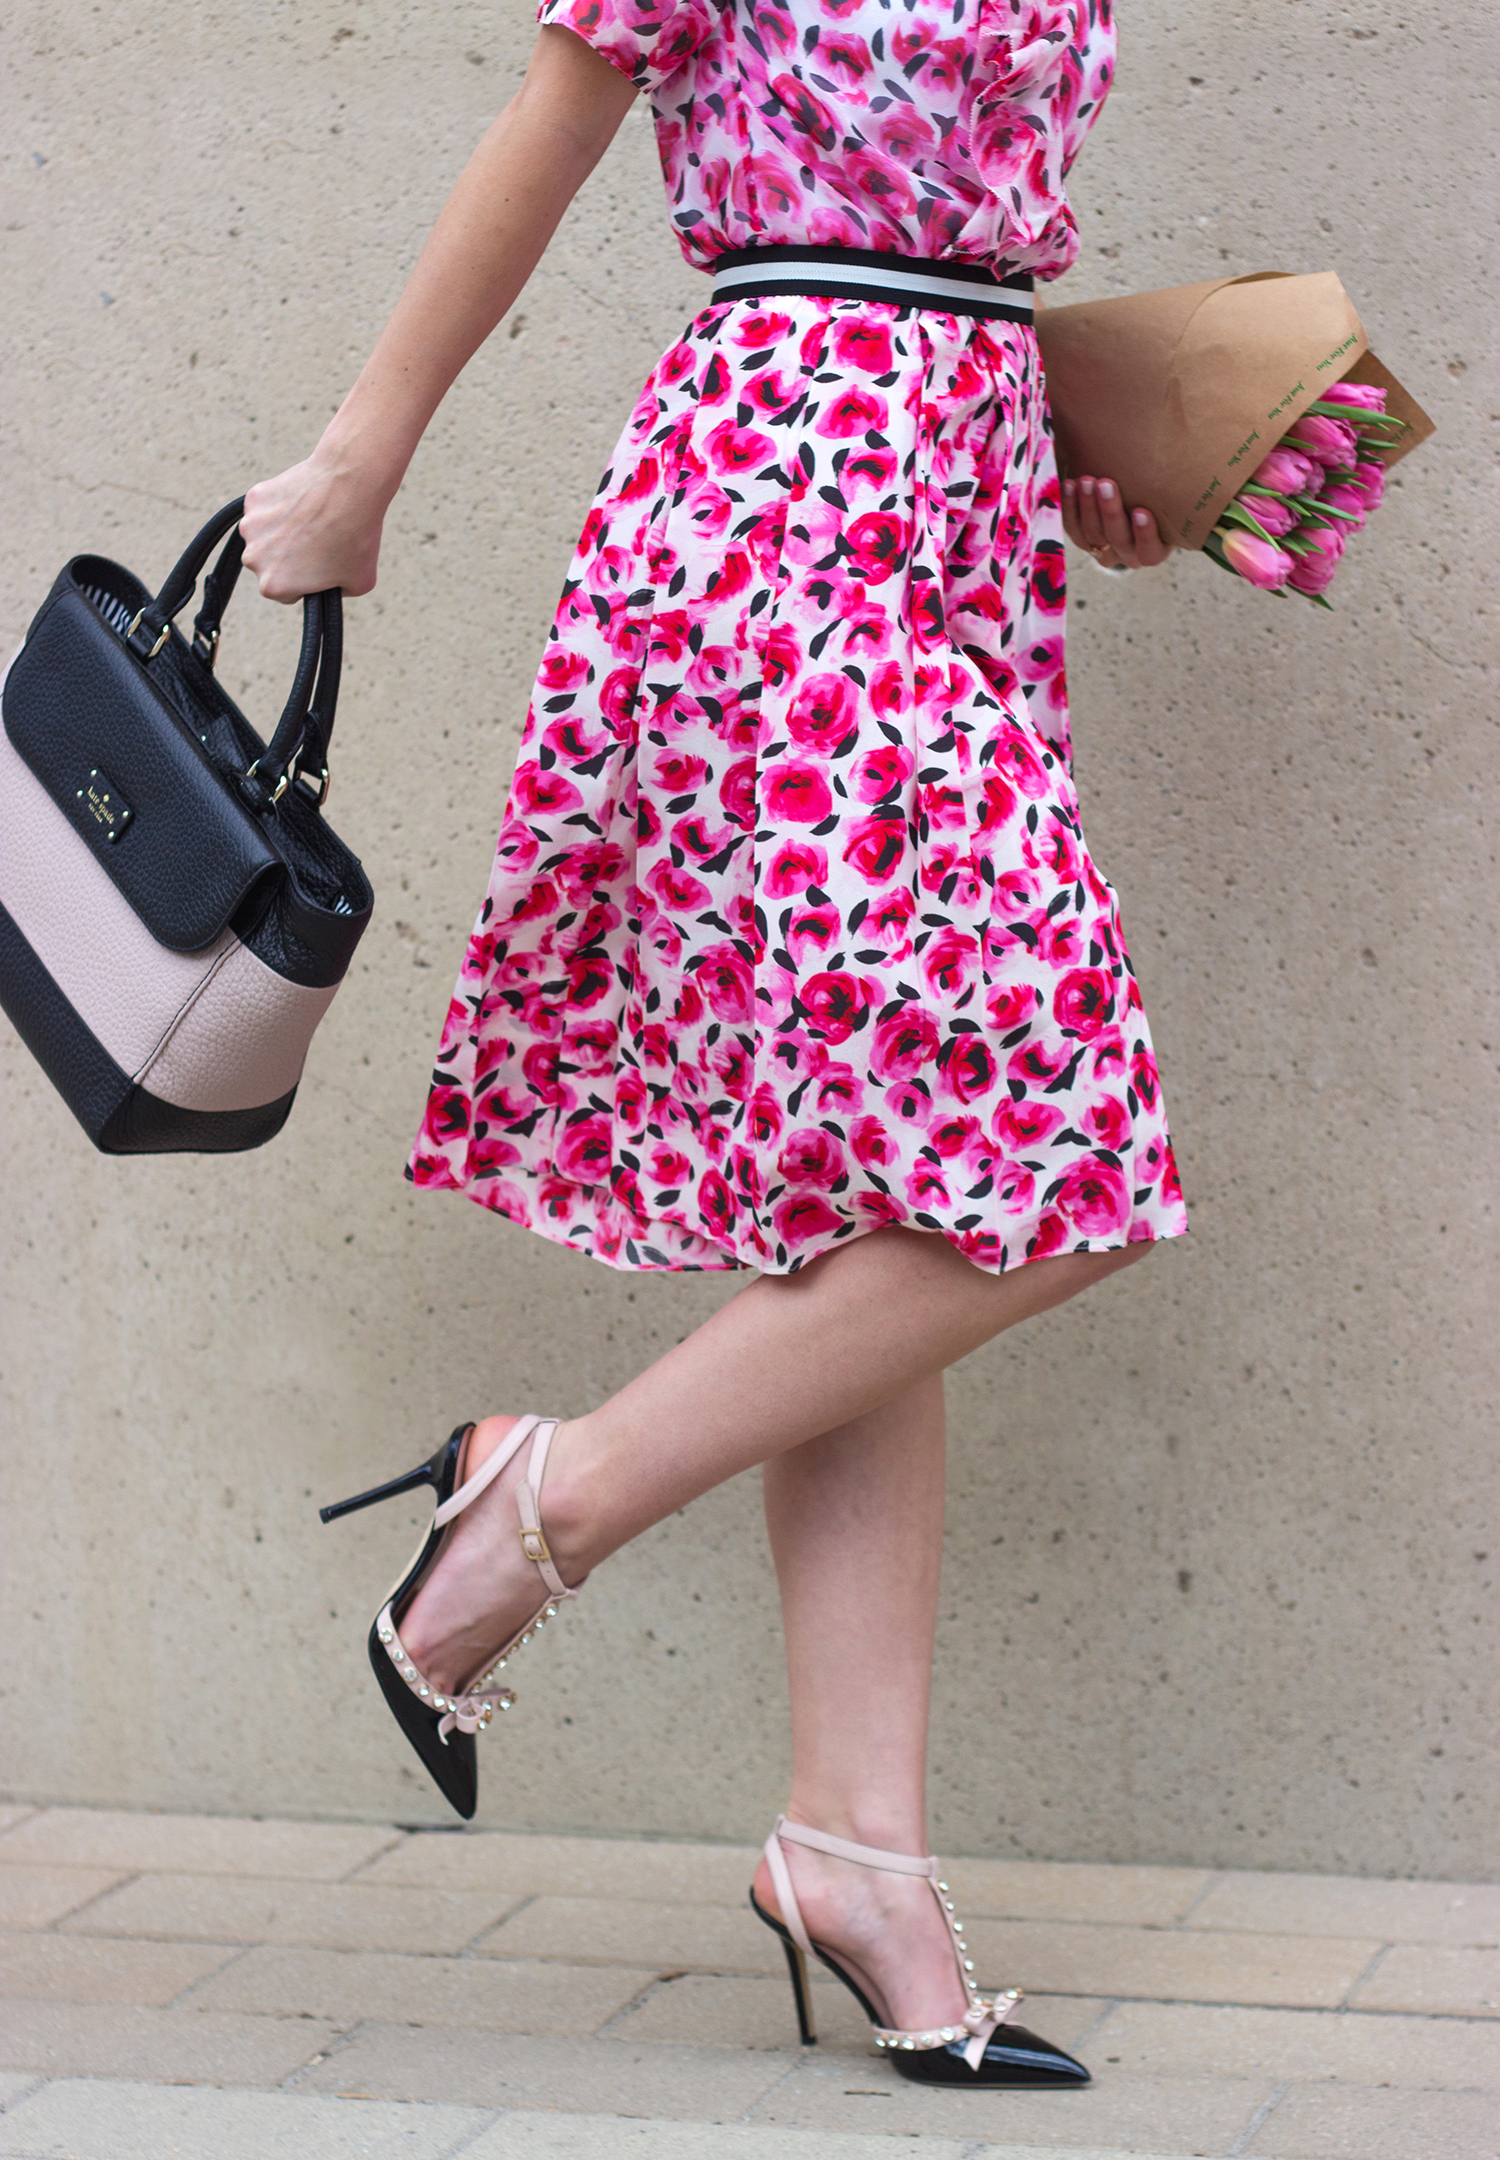 livvyland-blog-olivia-watson-austin-texas-fashion-blogger-kate-spade-broome-street-everyday-tee-white-rose-pleated-skirt-pink-black-spring-outfit-henley-handbag-2